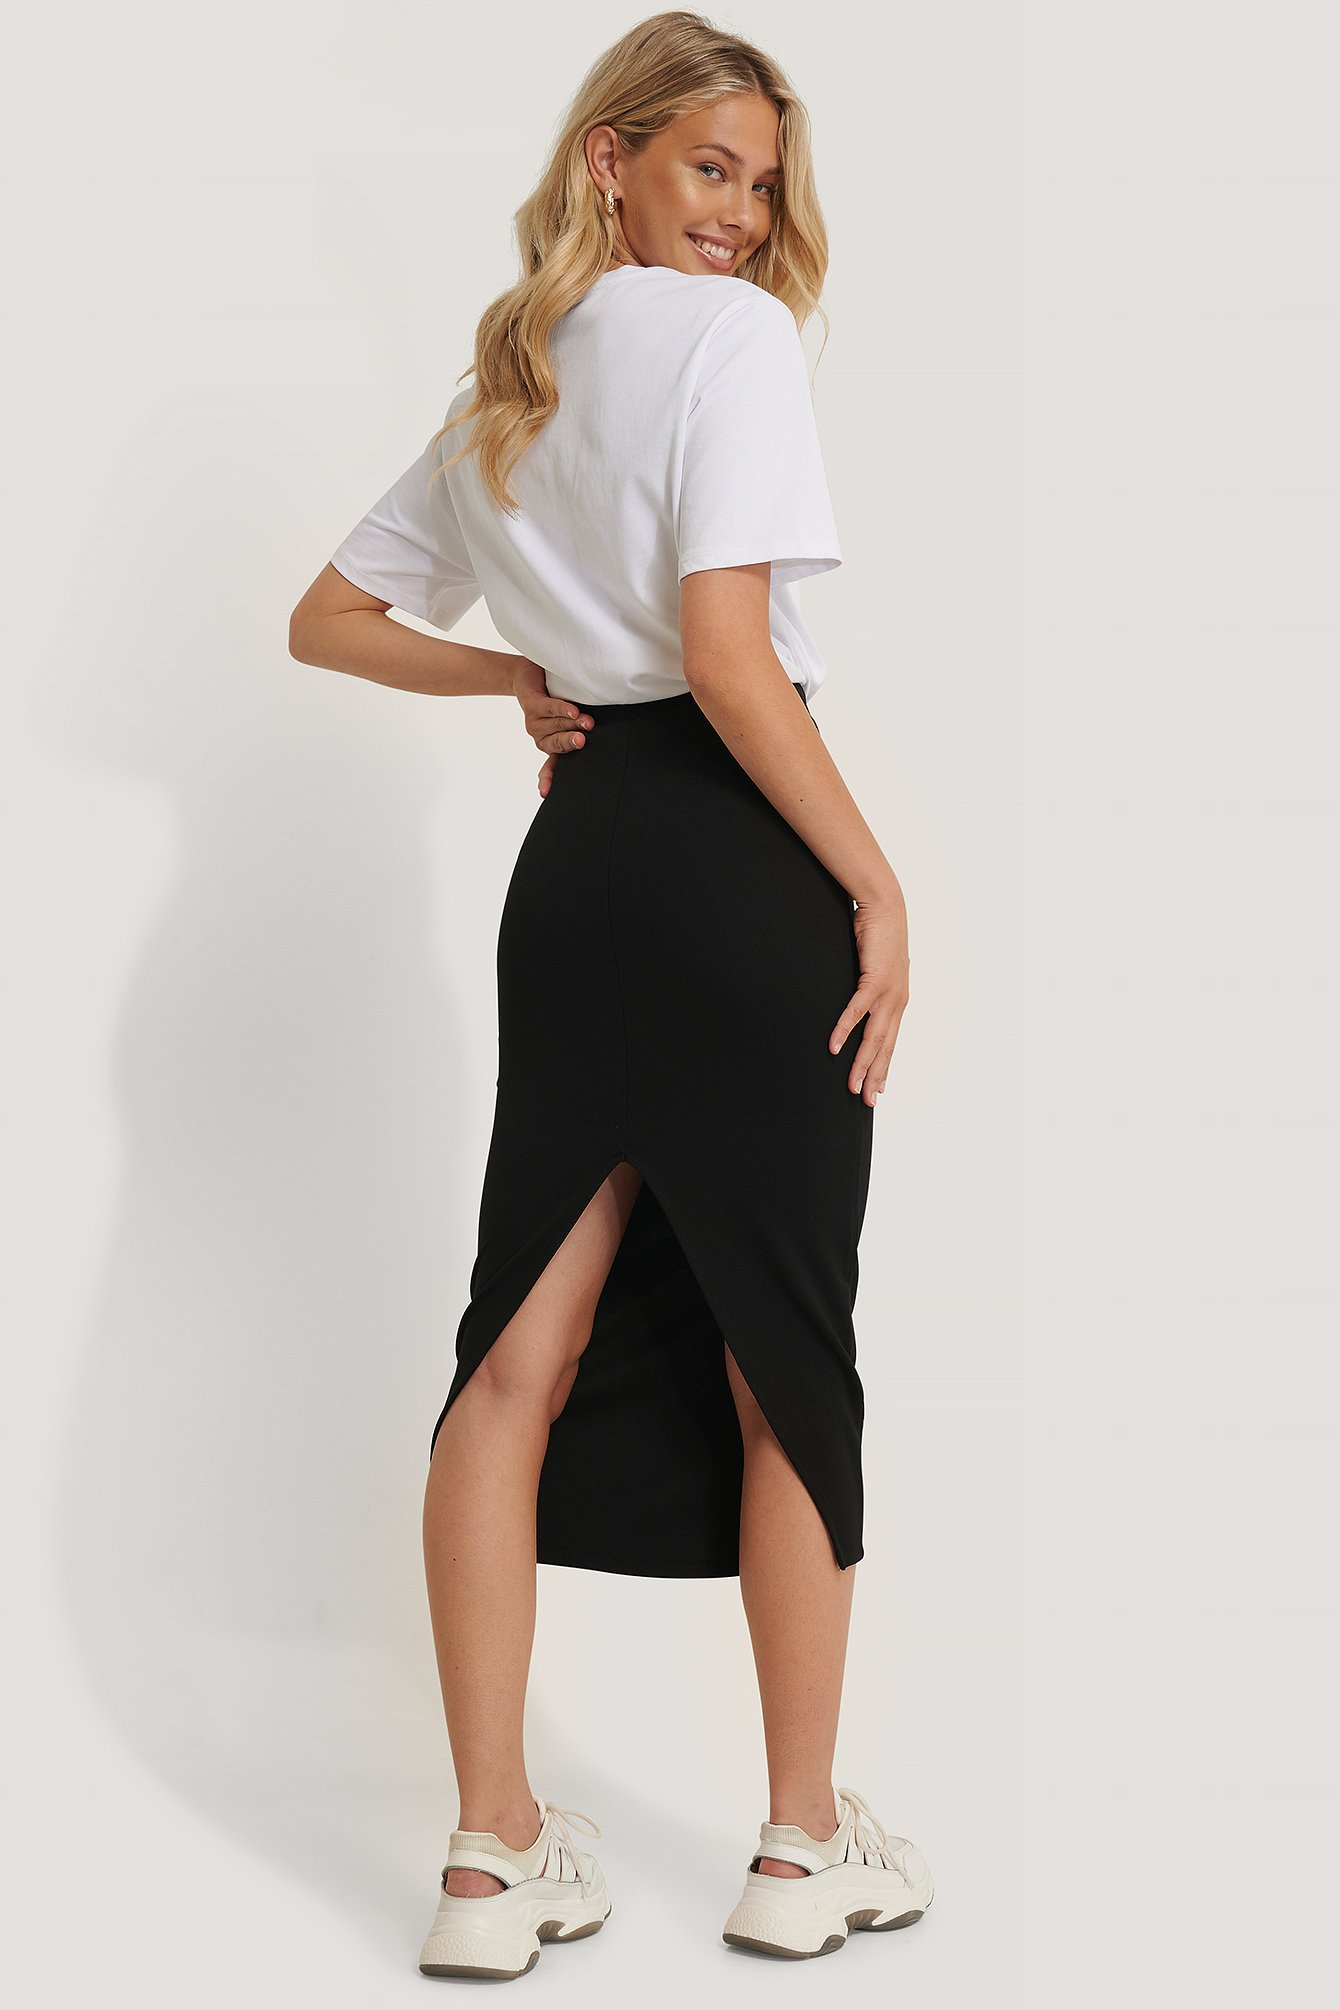 Black High Waist Sharp Cut Midi Skirt